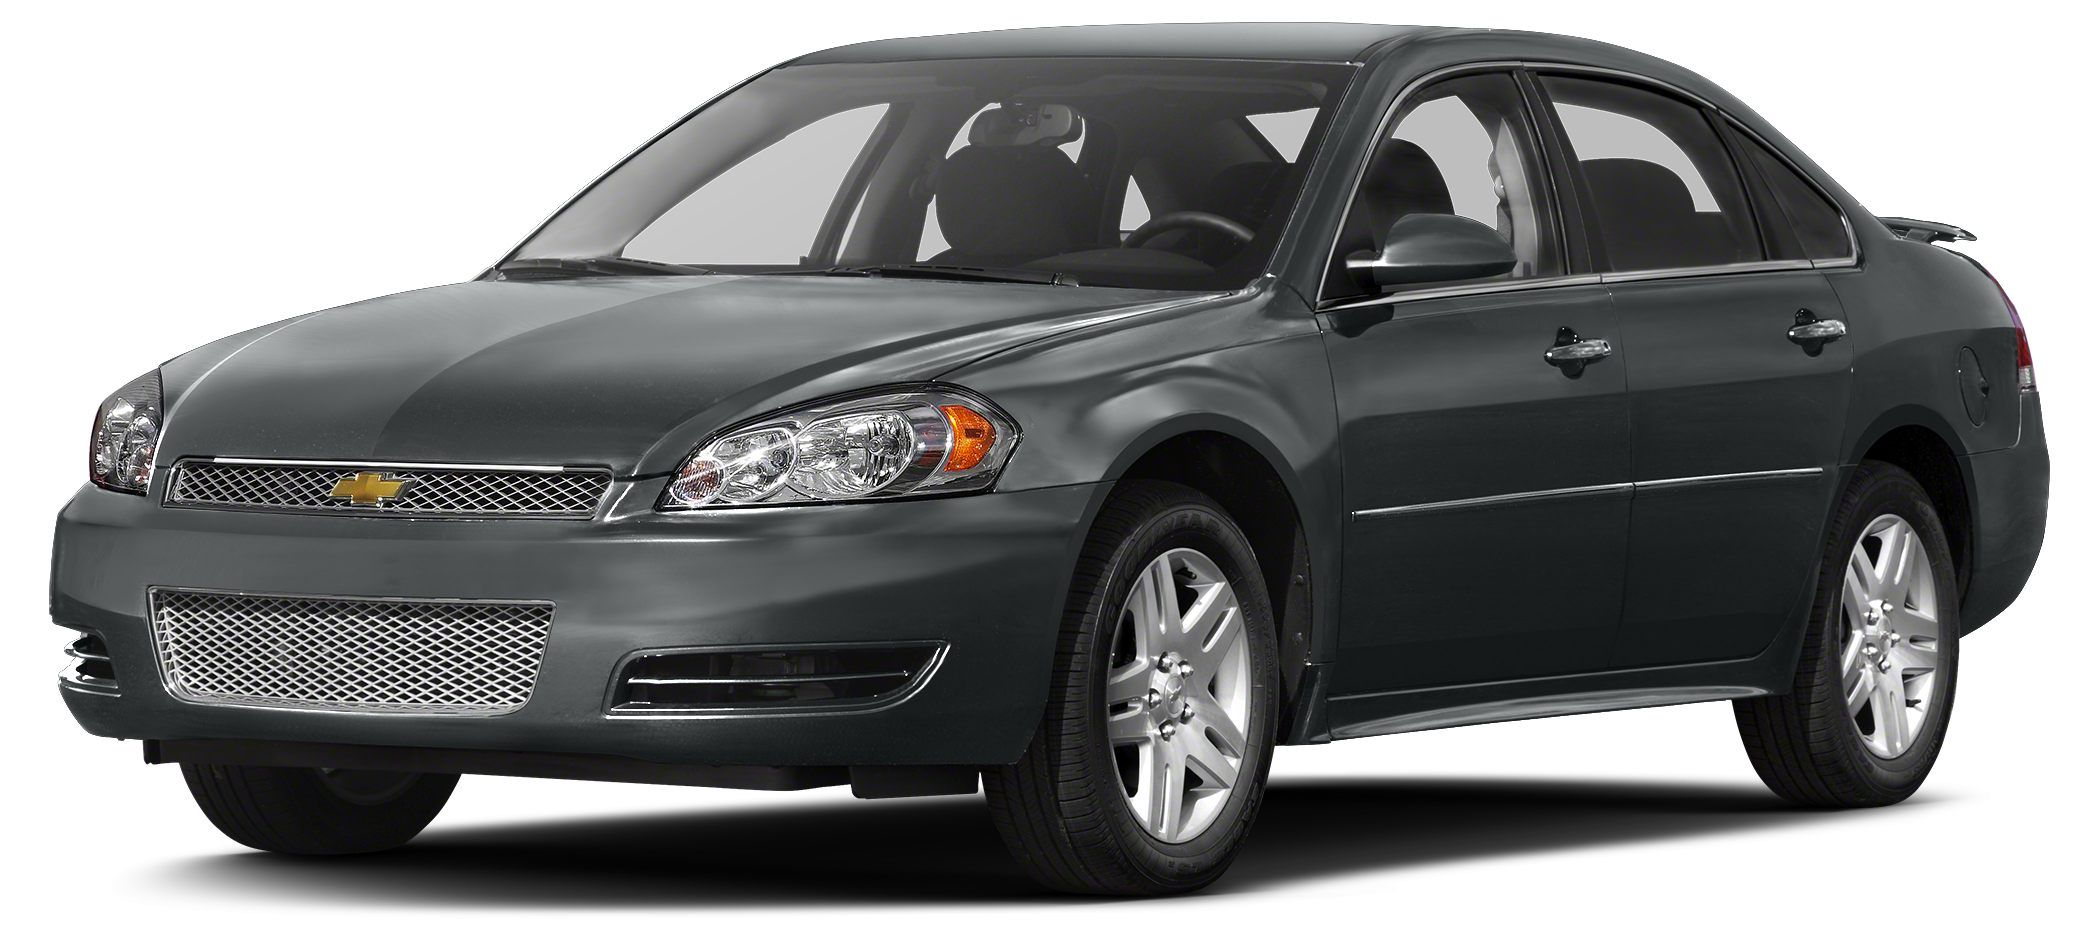 2014 Chevrolet Impala Limited LT Miles 62774Color Gray Stock SB15046A VIN 2G1WB5E39E1152934